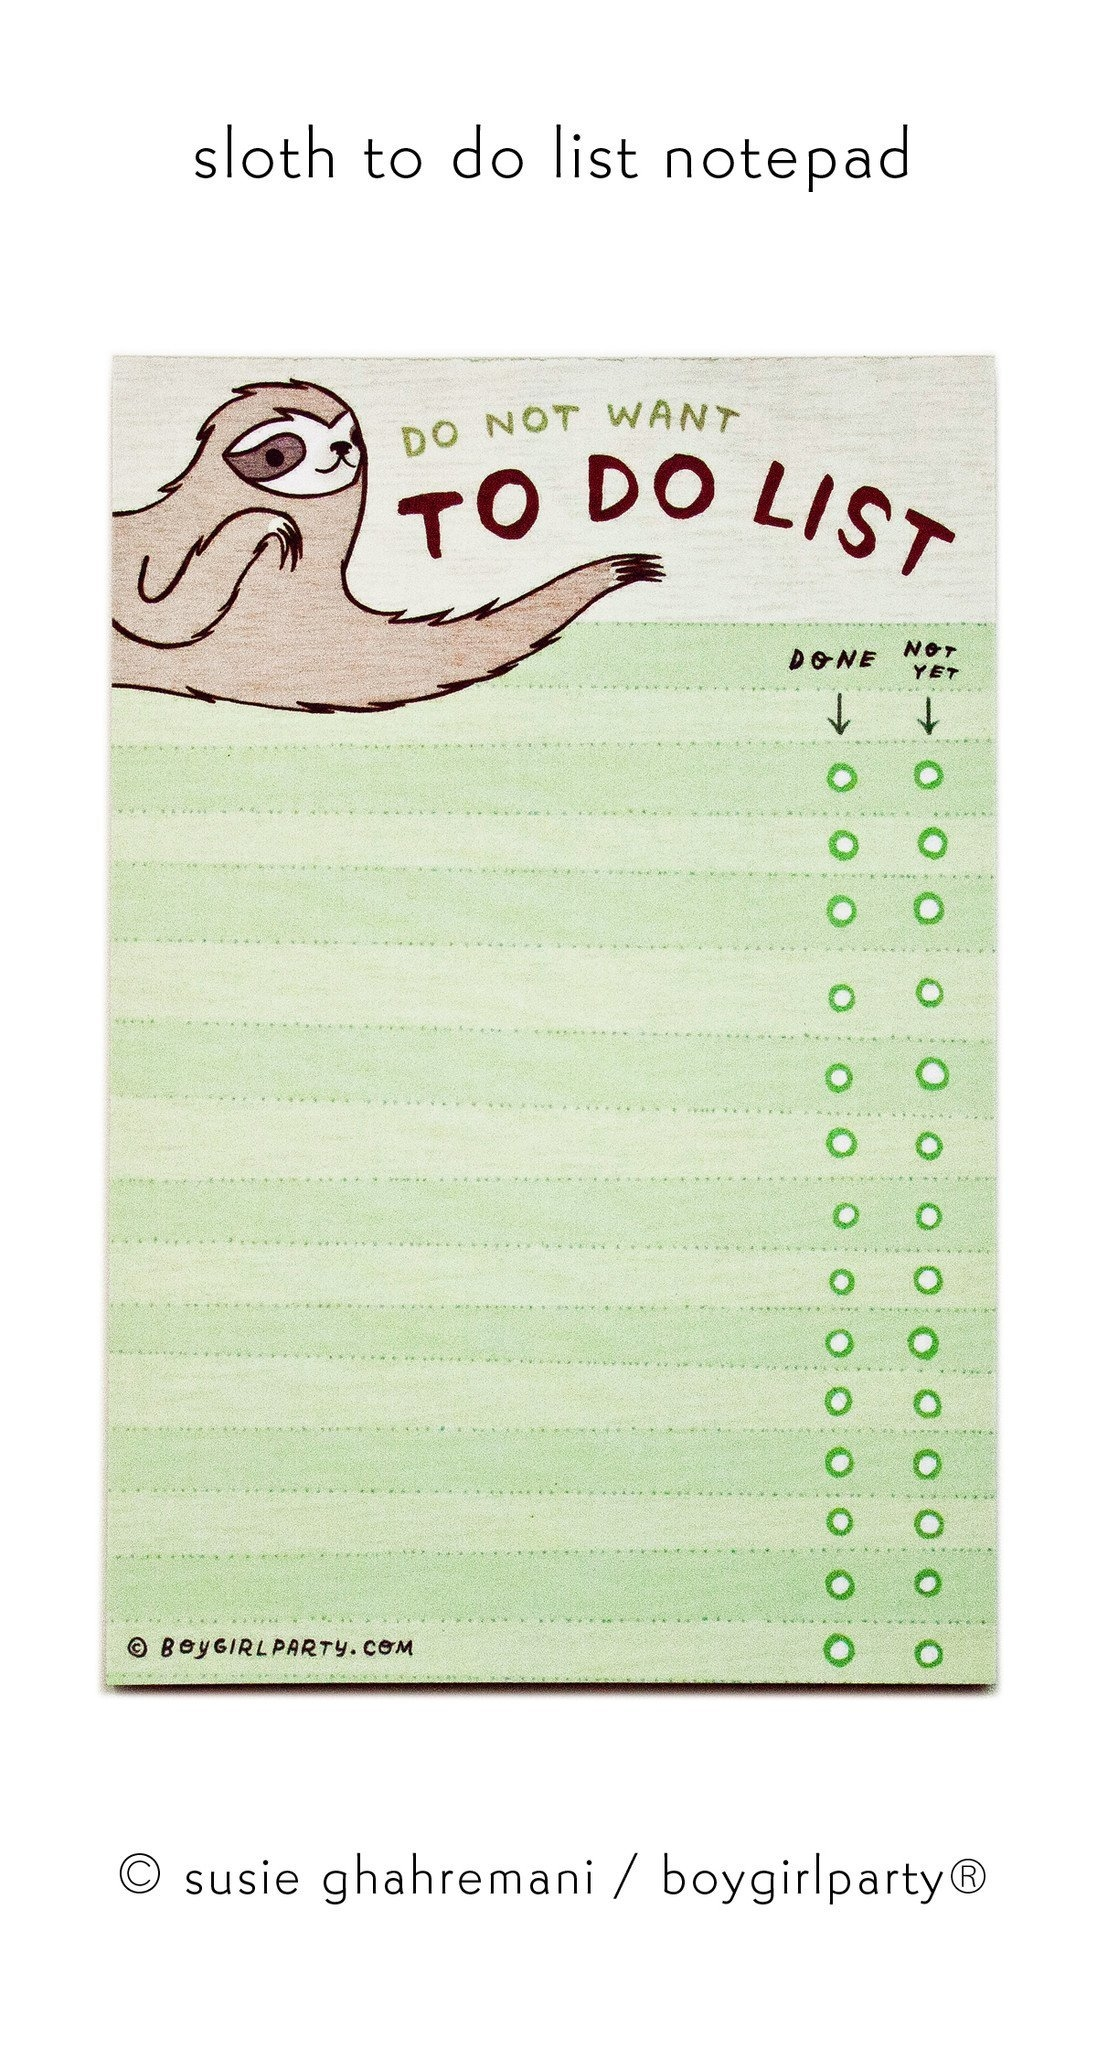 Image of Sloth To Do List Notepad - Do Not Want To Do List - Funny Sloth Gifts by boygirlparty